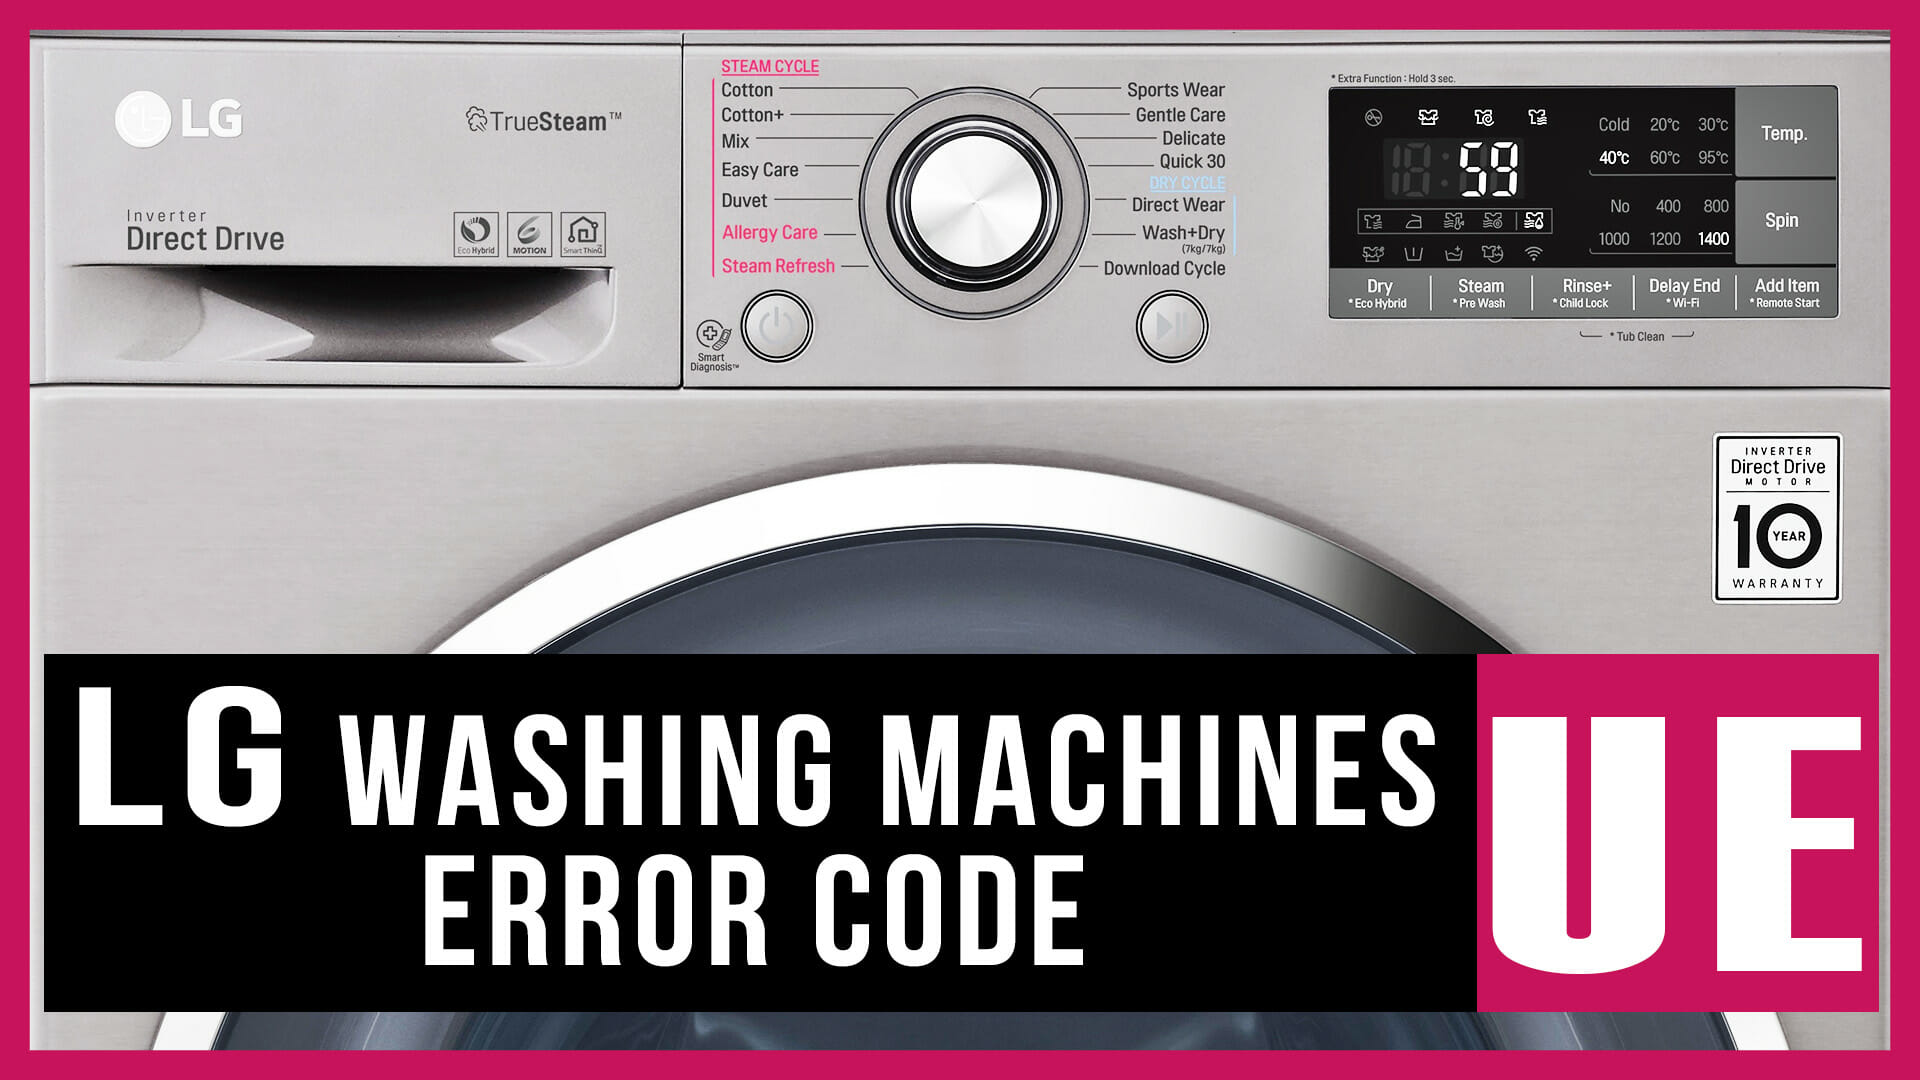 LG washing machines error code UE